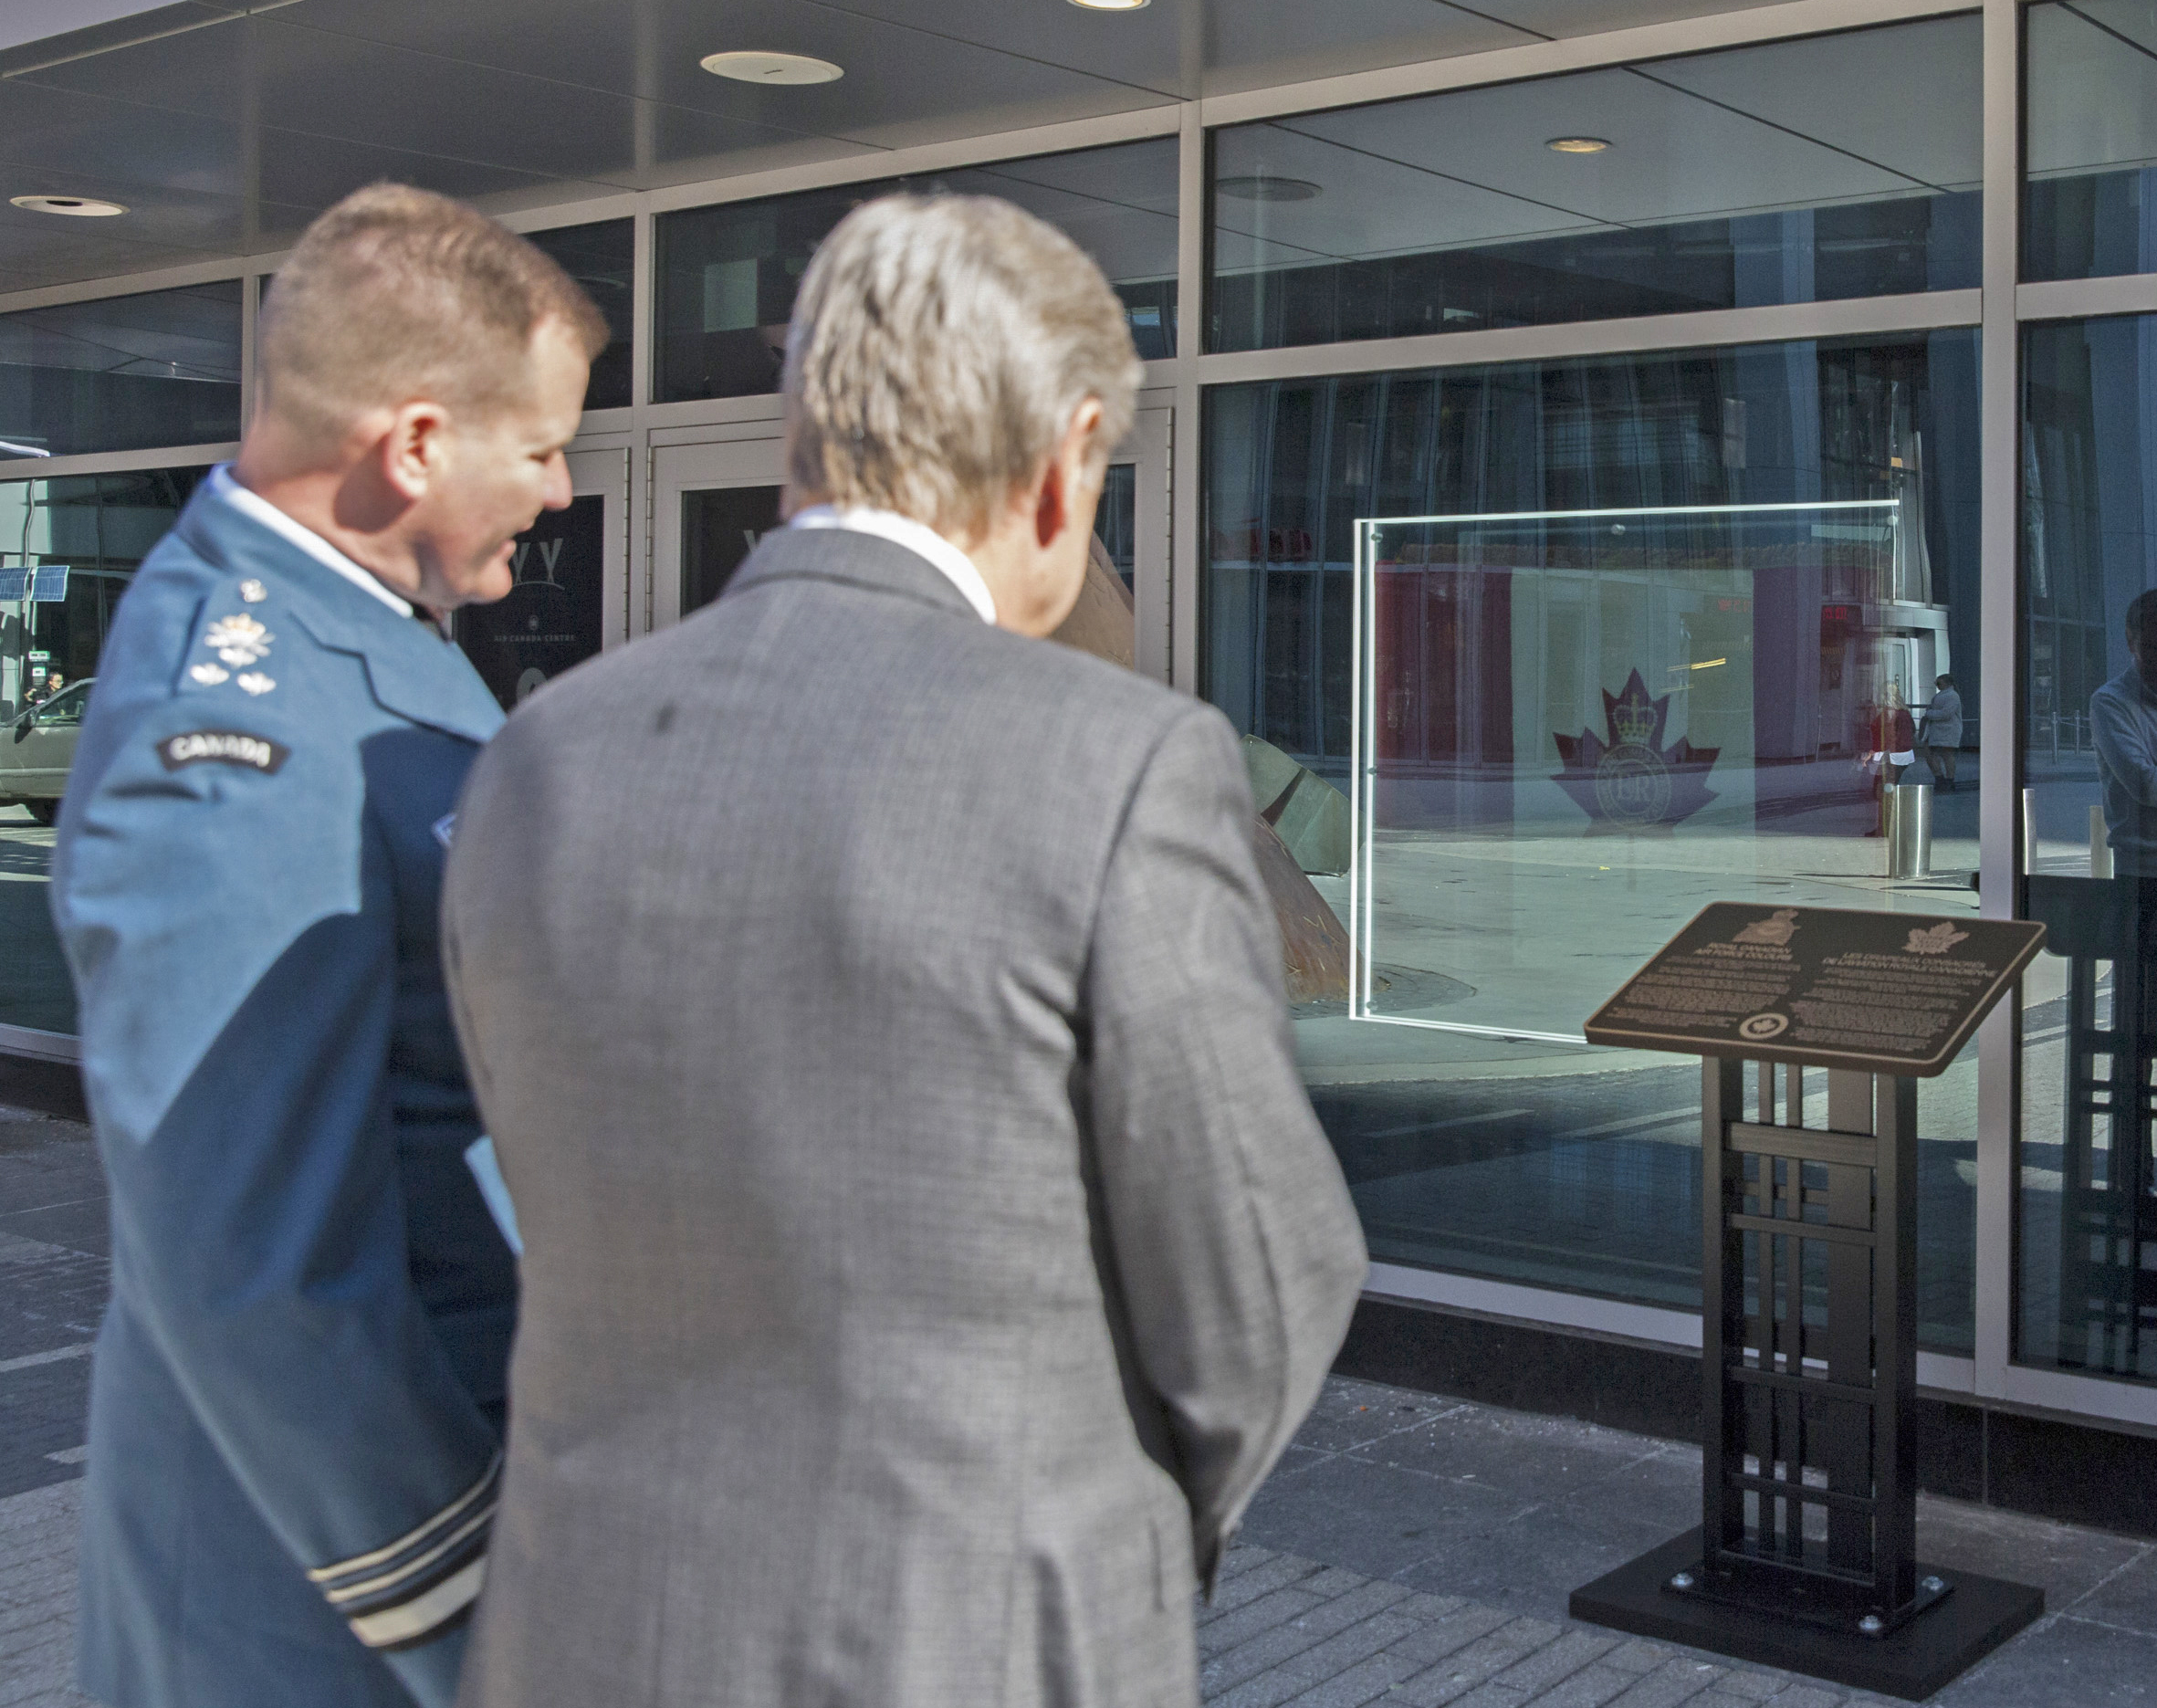 Lieutenant-General Hood and Mr. Friisdahl discuss the appearance of the Colours from the exterior of the Air Canada Centre. PHOTO: MLSE